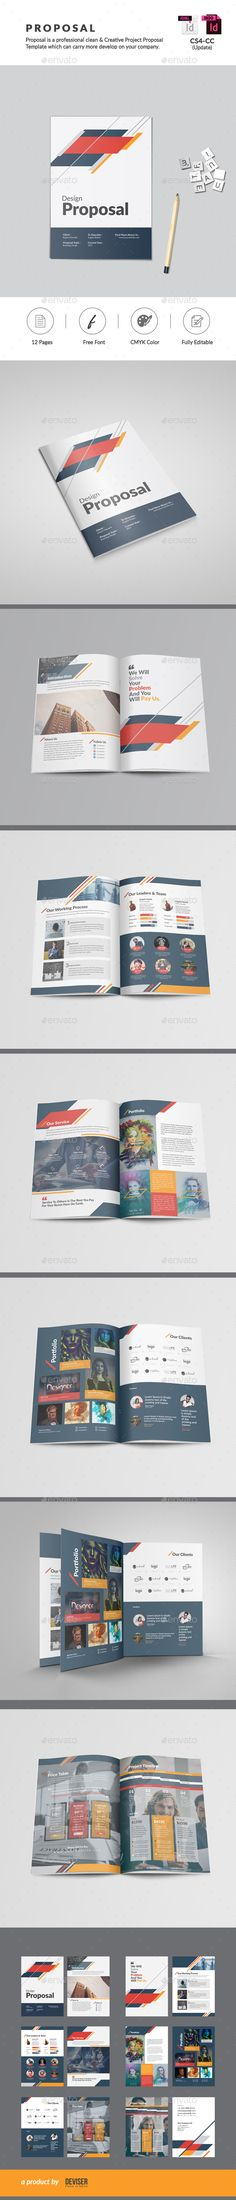 30 Pages Clean Business Proposal Template InDesign INDD Proposal - download business proposal template